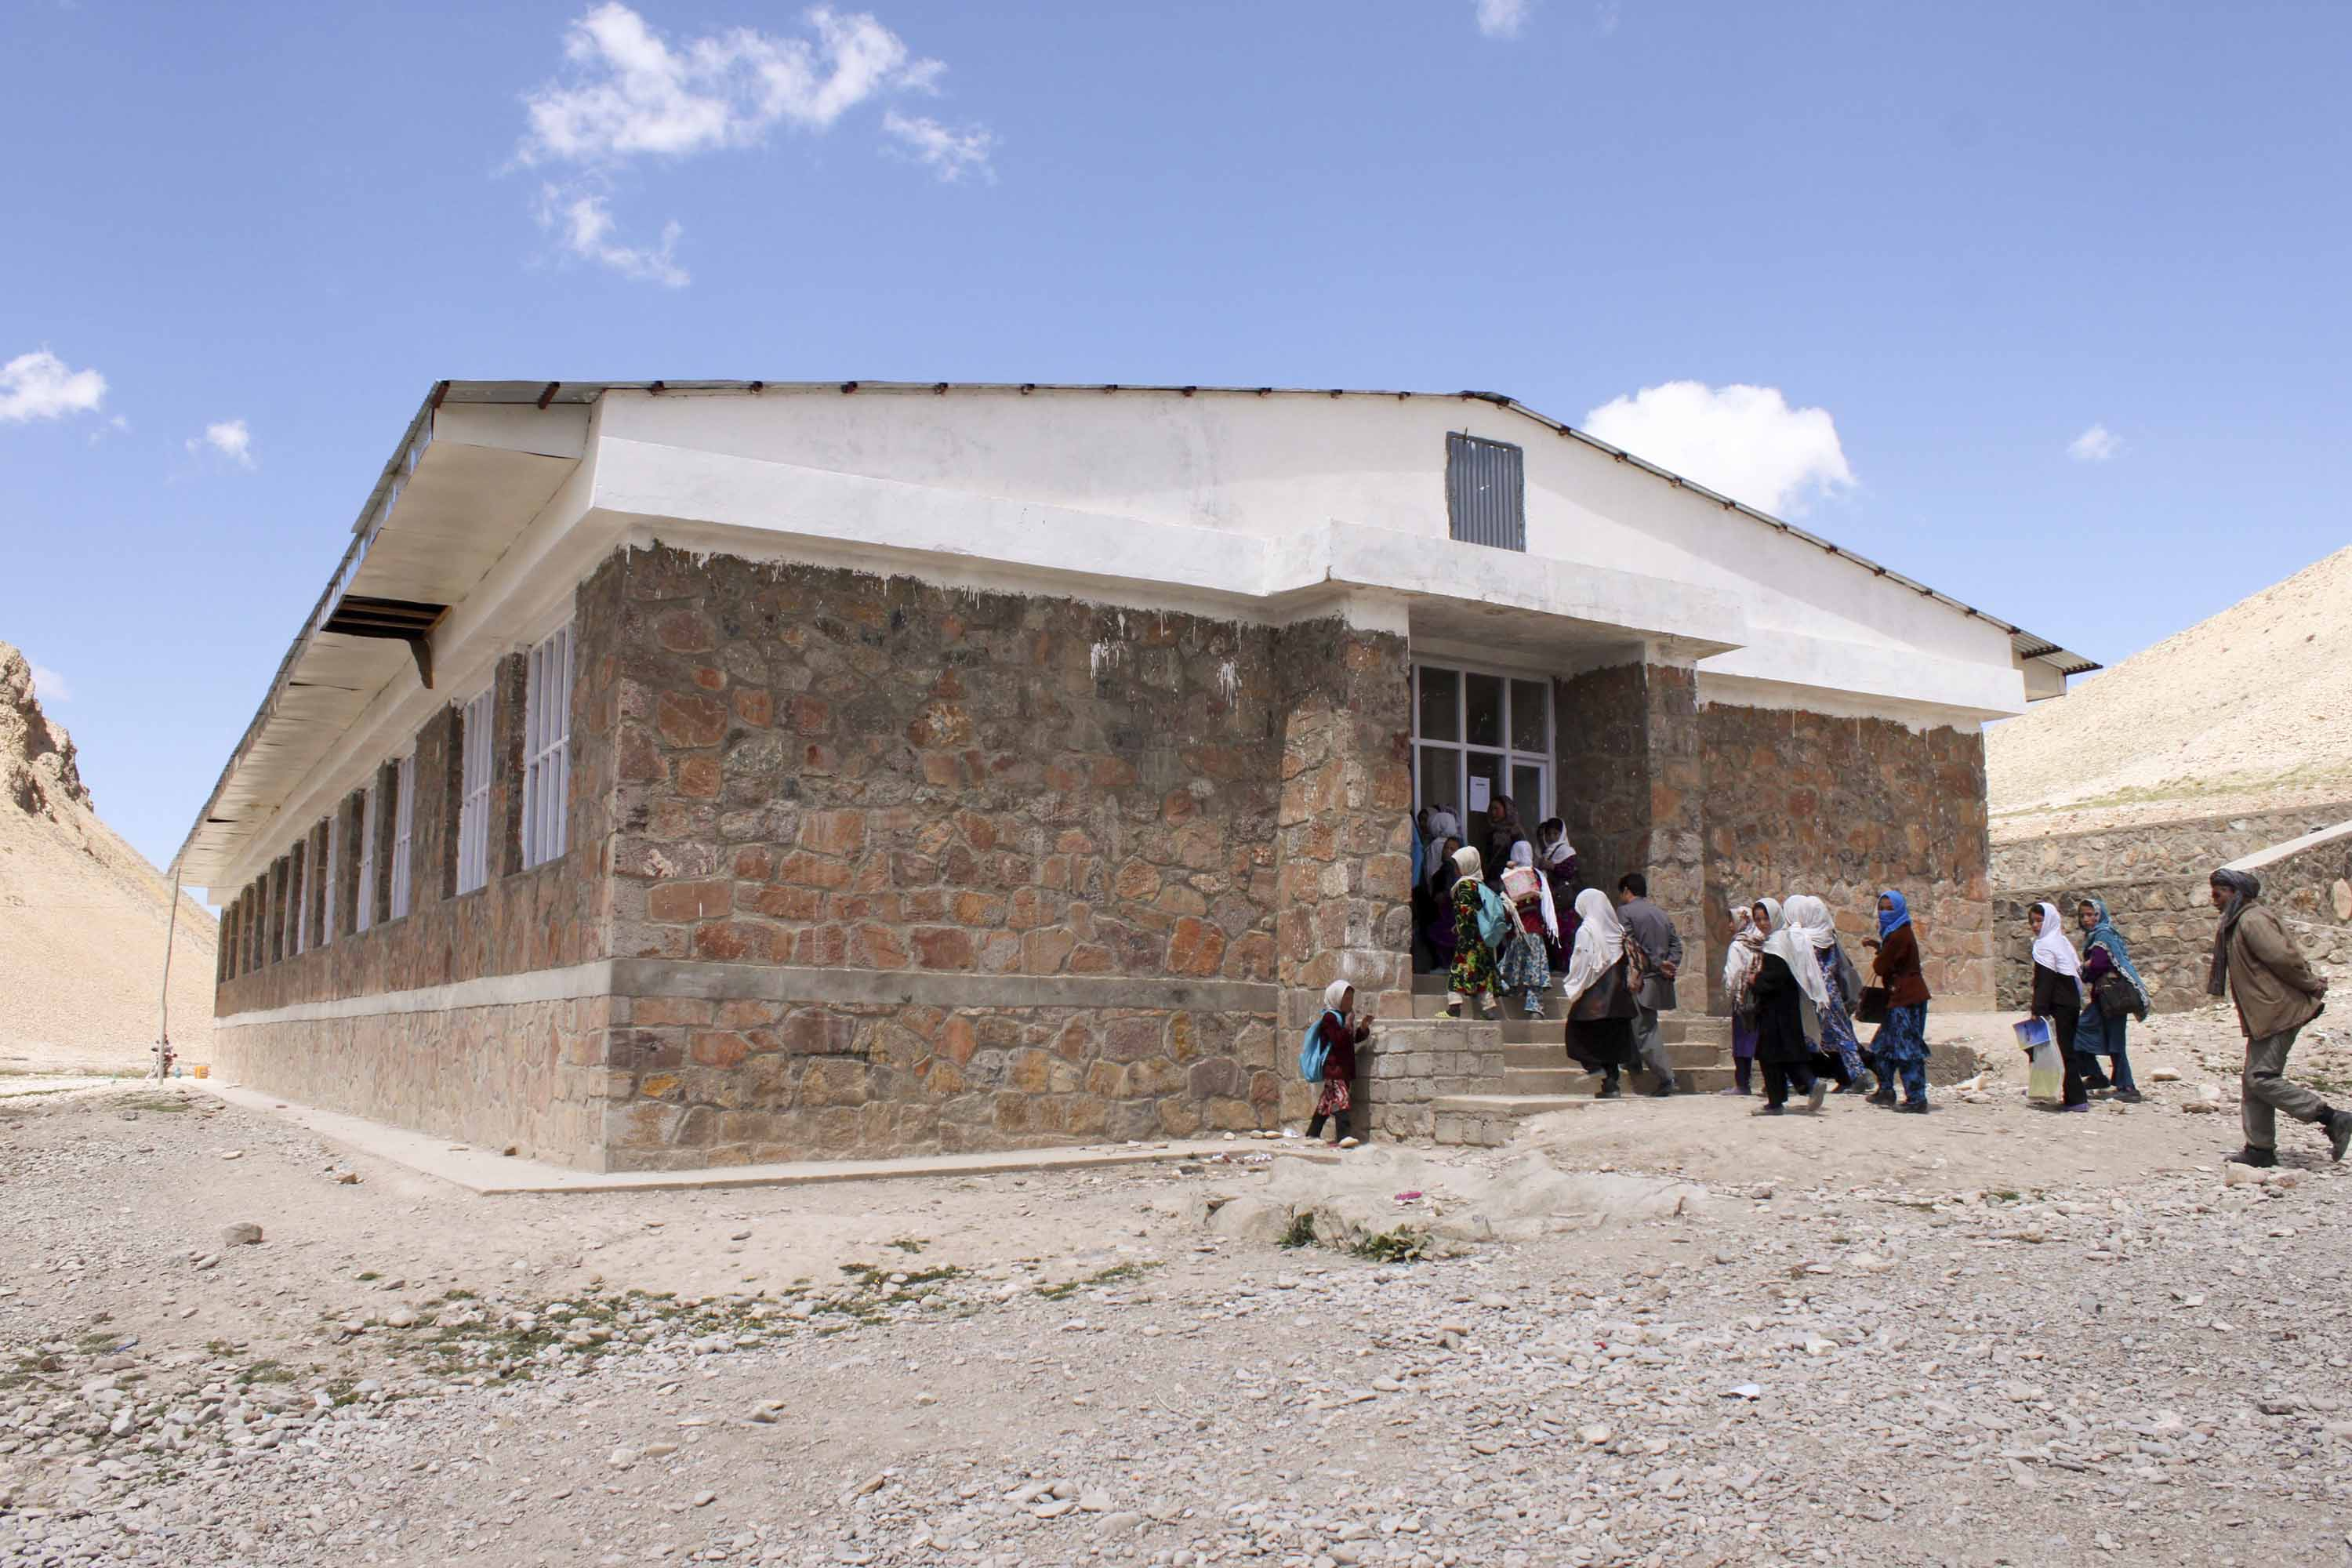 An image of a stone school building with children rushing into it.